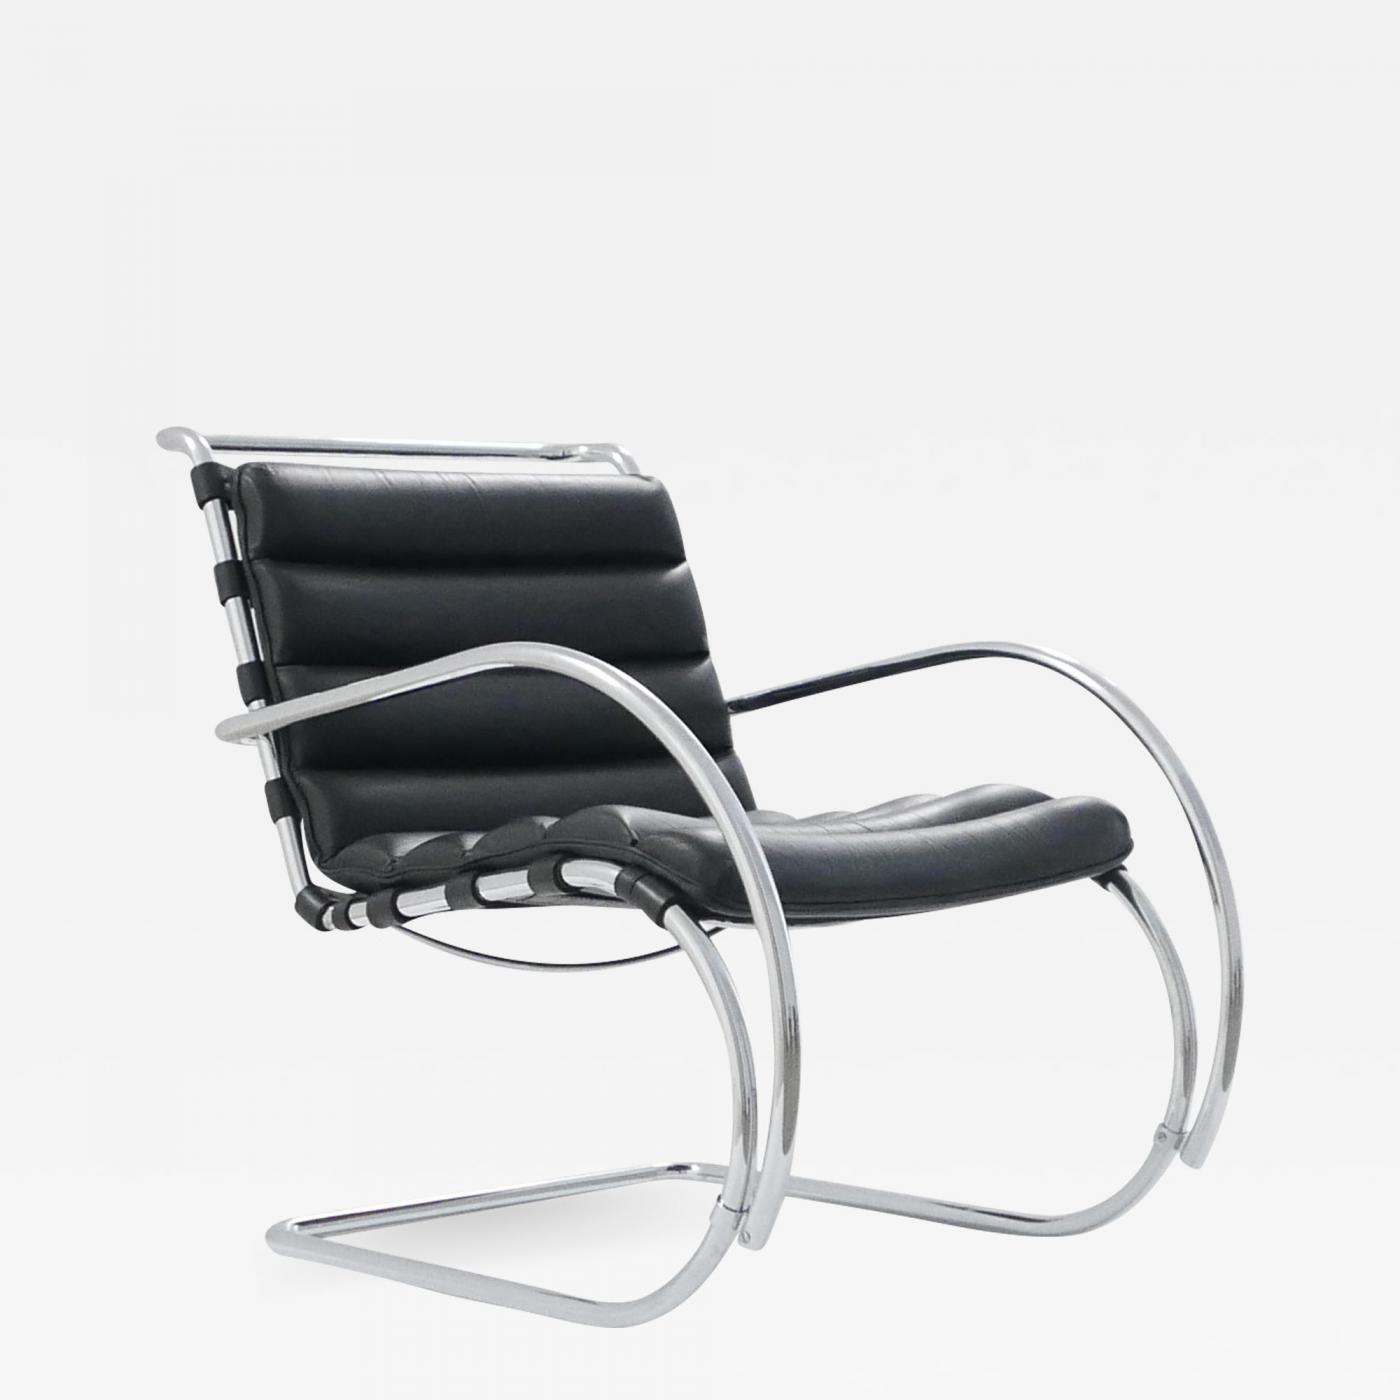 Swell Ludwig Mies Van Der Rohe Mr Lounge Chair With Chrome Squirreltailoven Fun Painted Chair Ideas Images Squirreltailovenorg